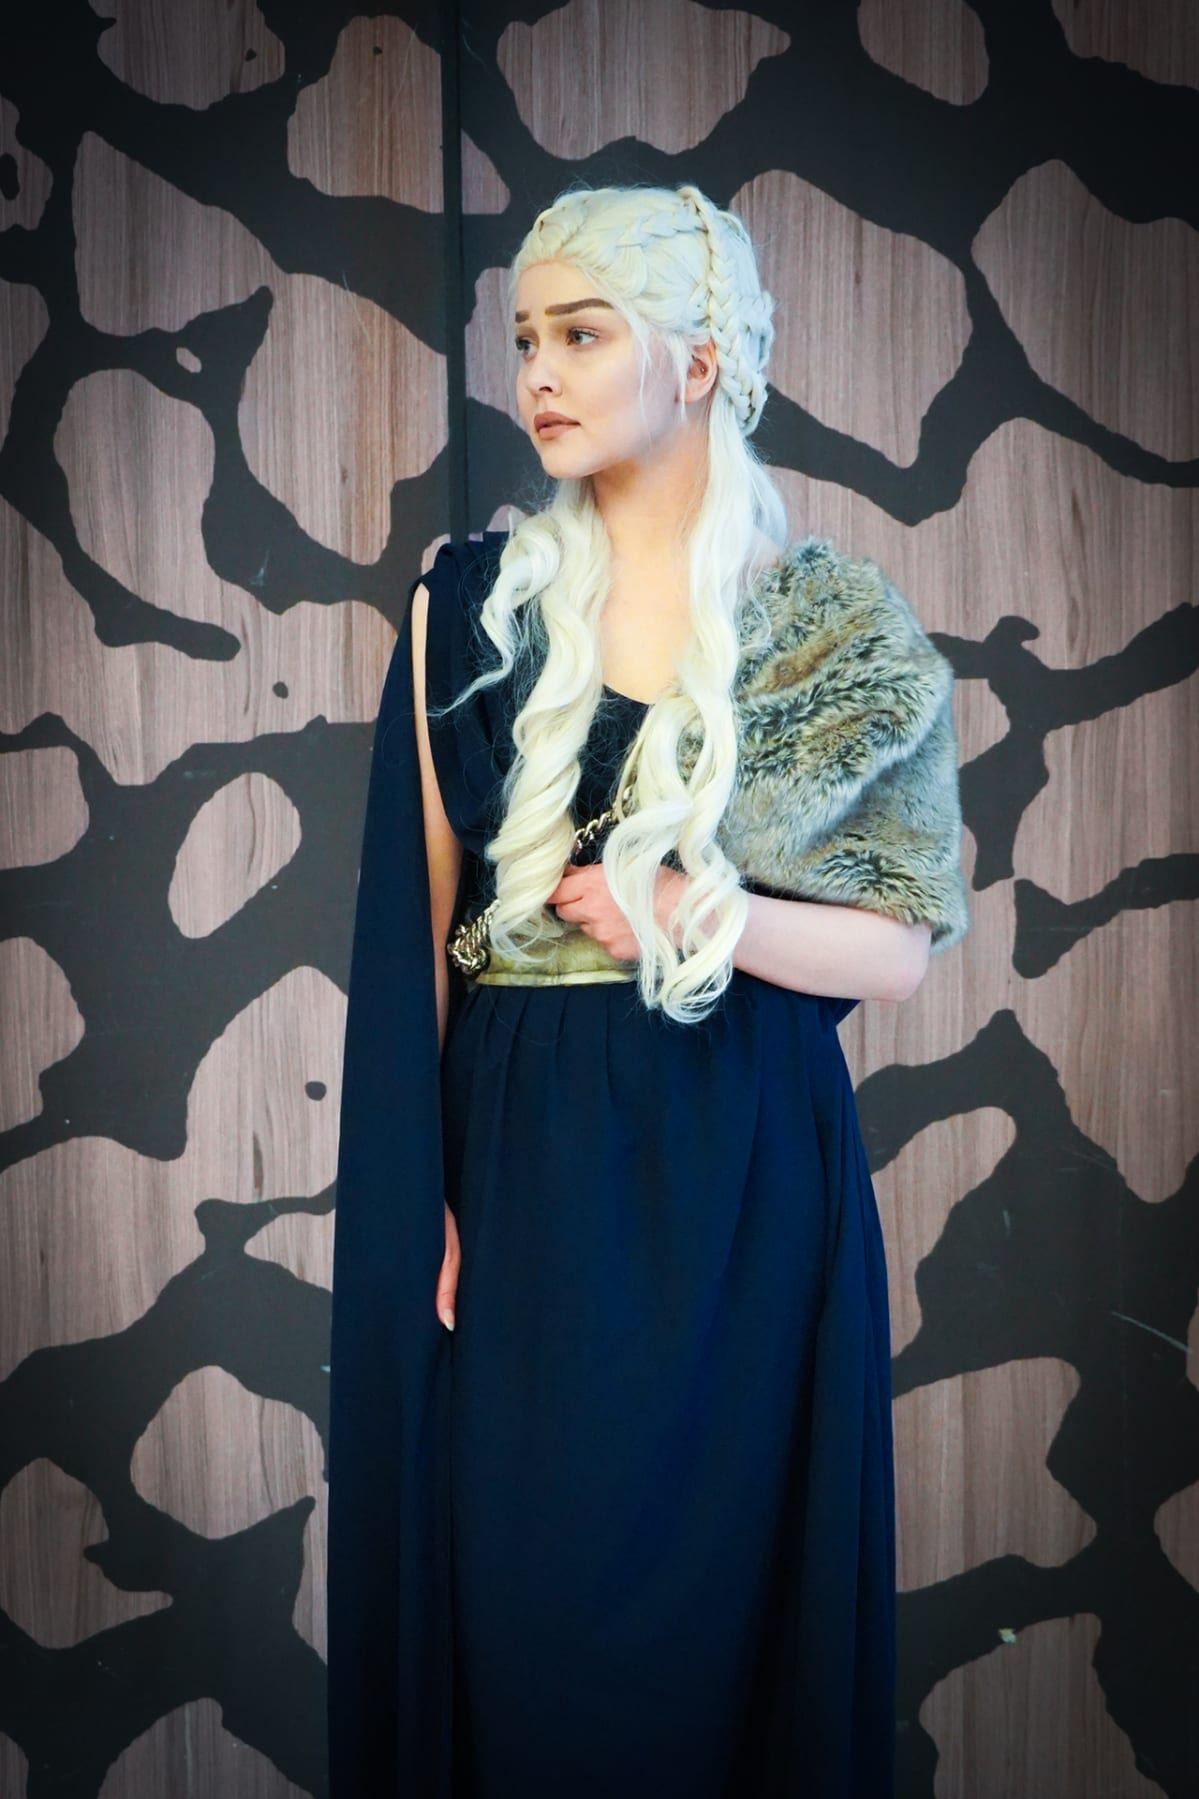 Game of Thrones, cosplay, Daenerys Targaryen, Popcult